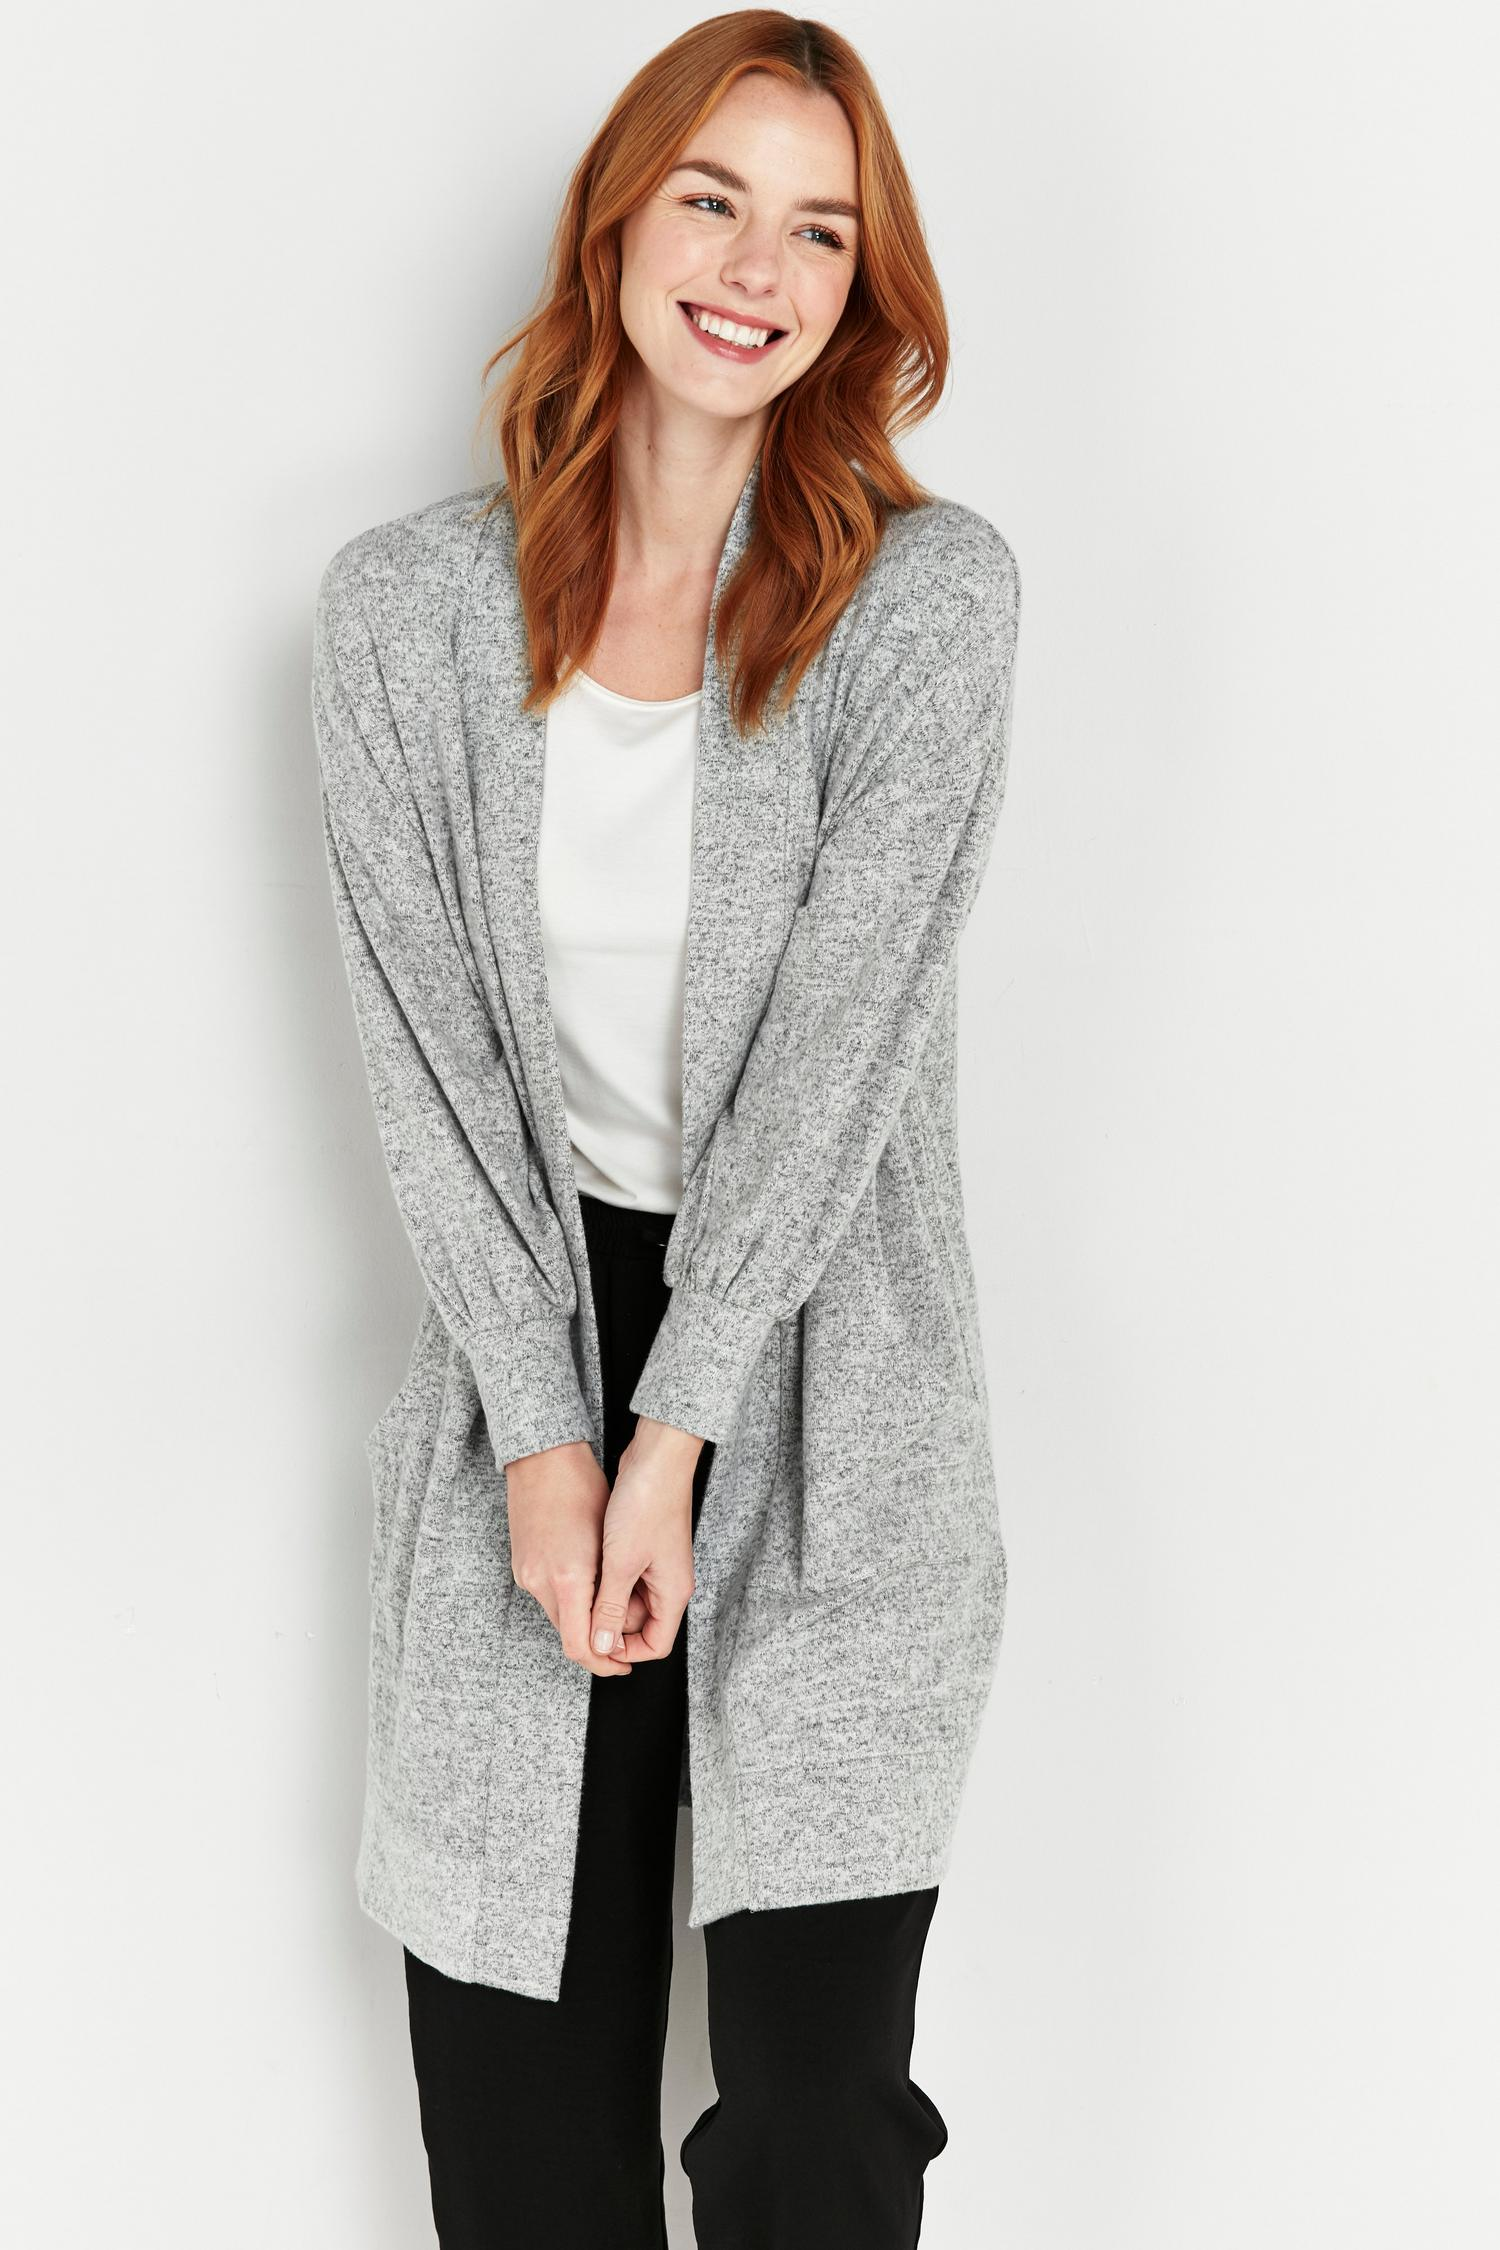 131 PETITE Grey Soft Relaxed Longline Cardigan image number 3